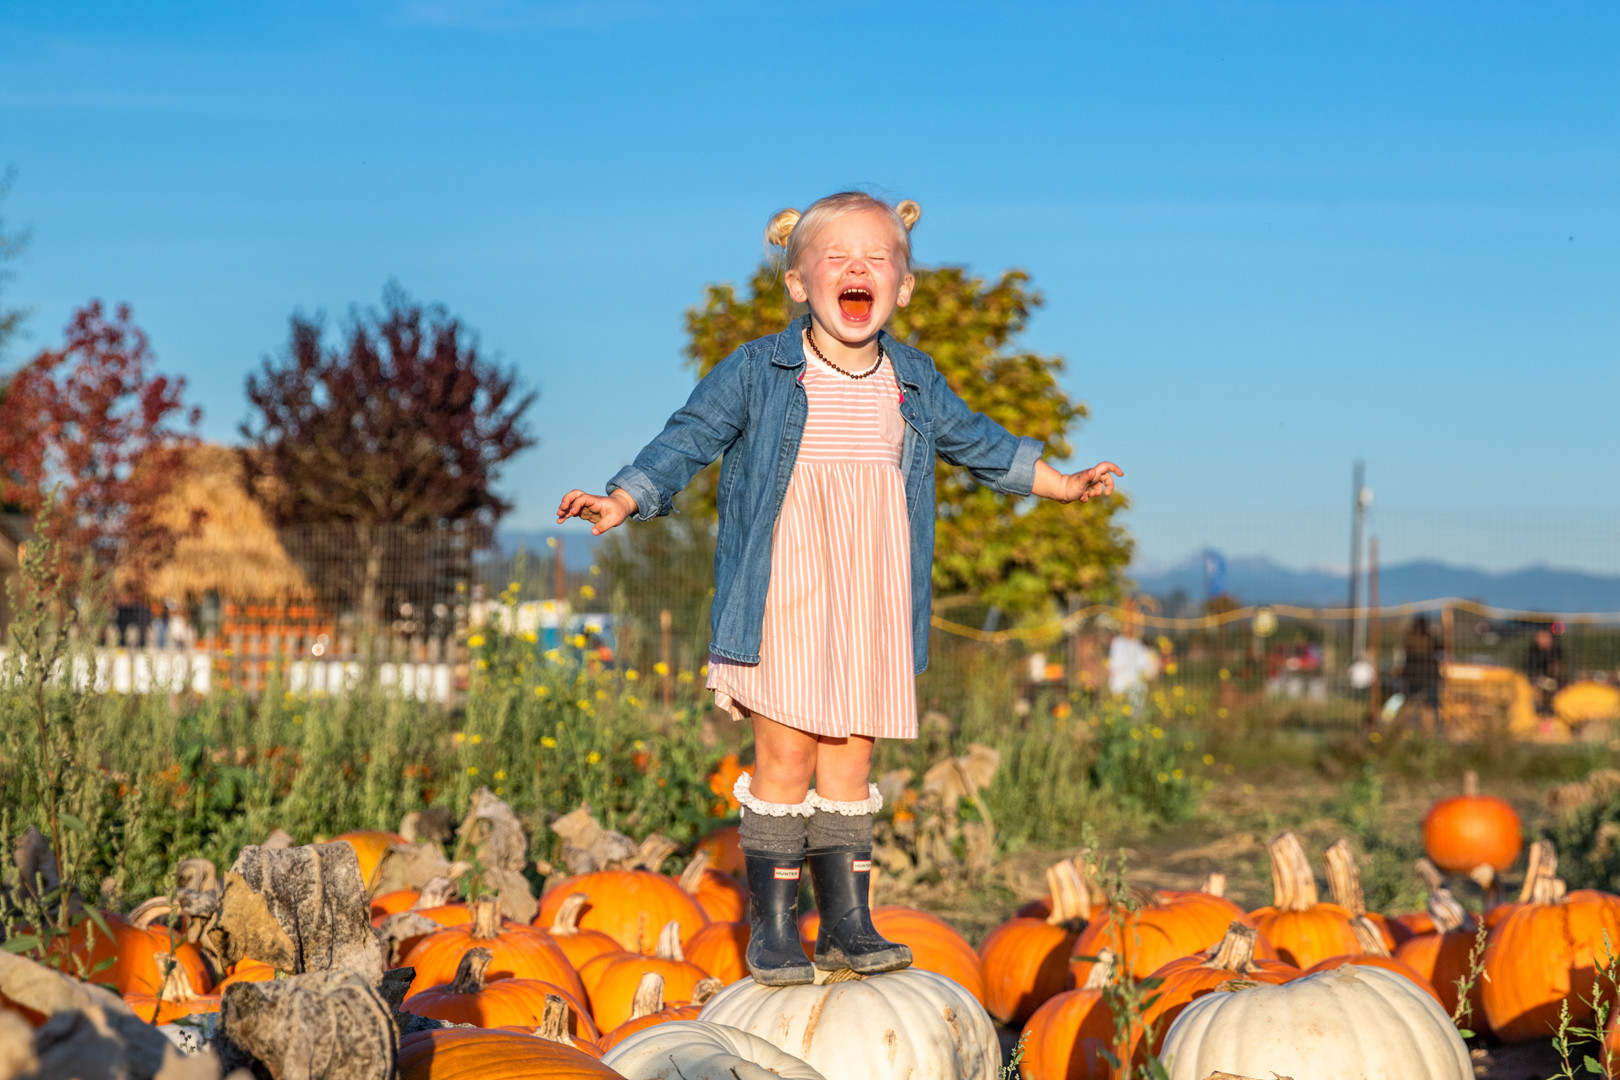 Girl on Pumpkin Stocker Farms